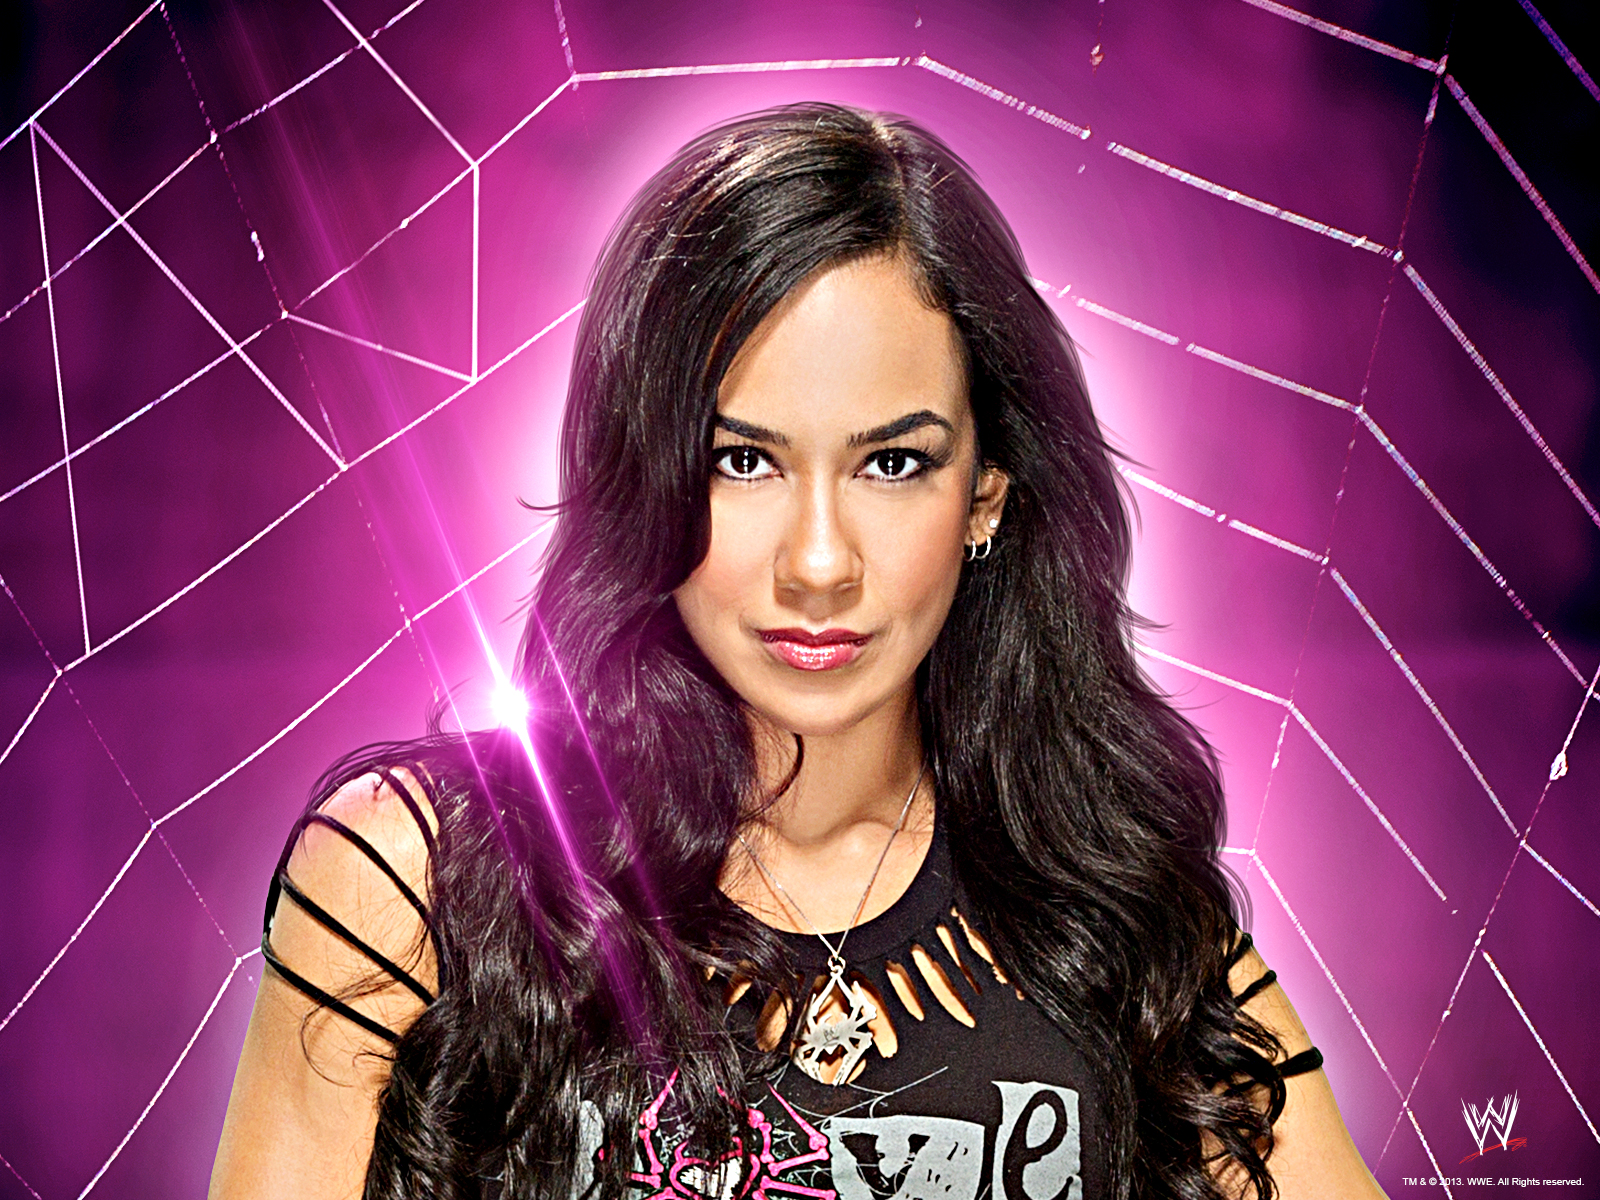 Wwe diva aj lee wwe wallpaper 36843516 fanpop - Wwe divas wallpapers ...